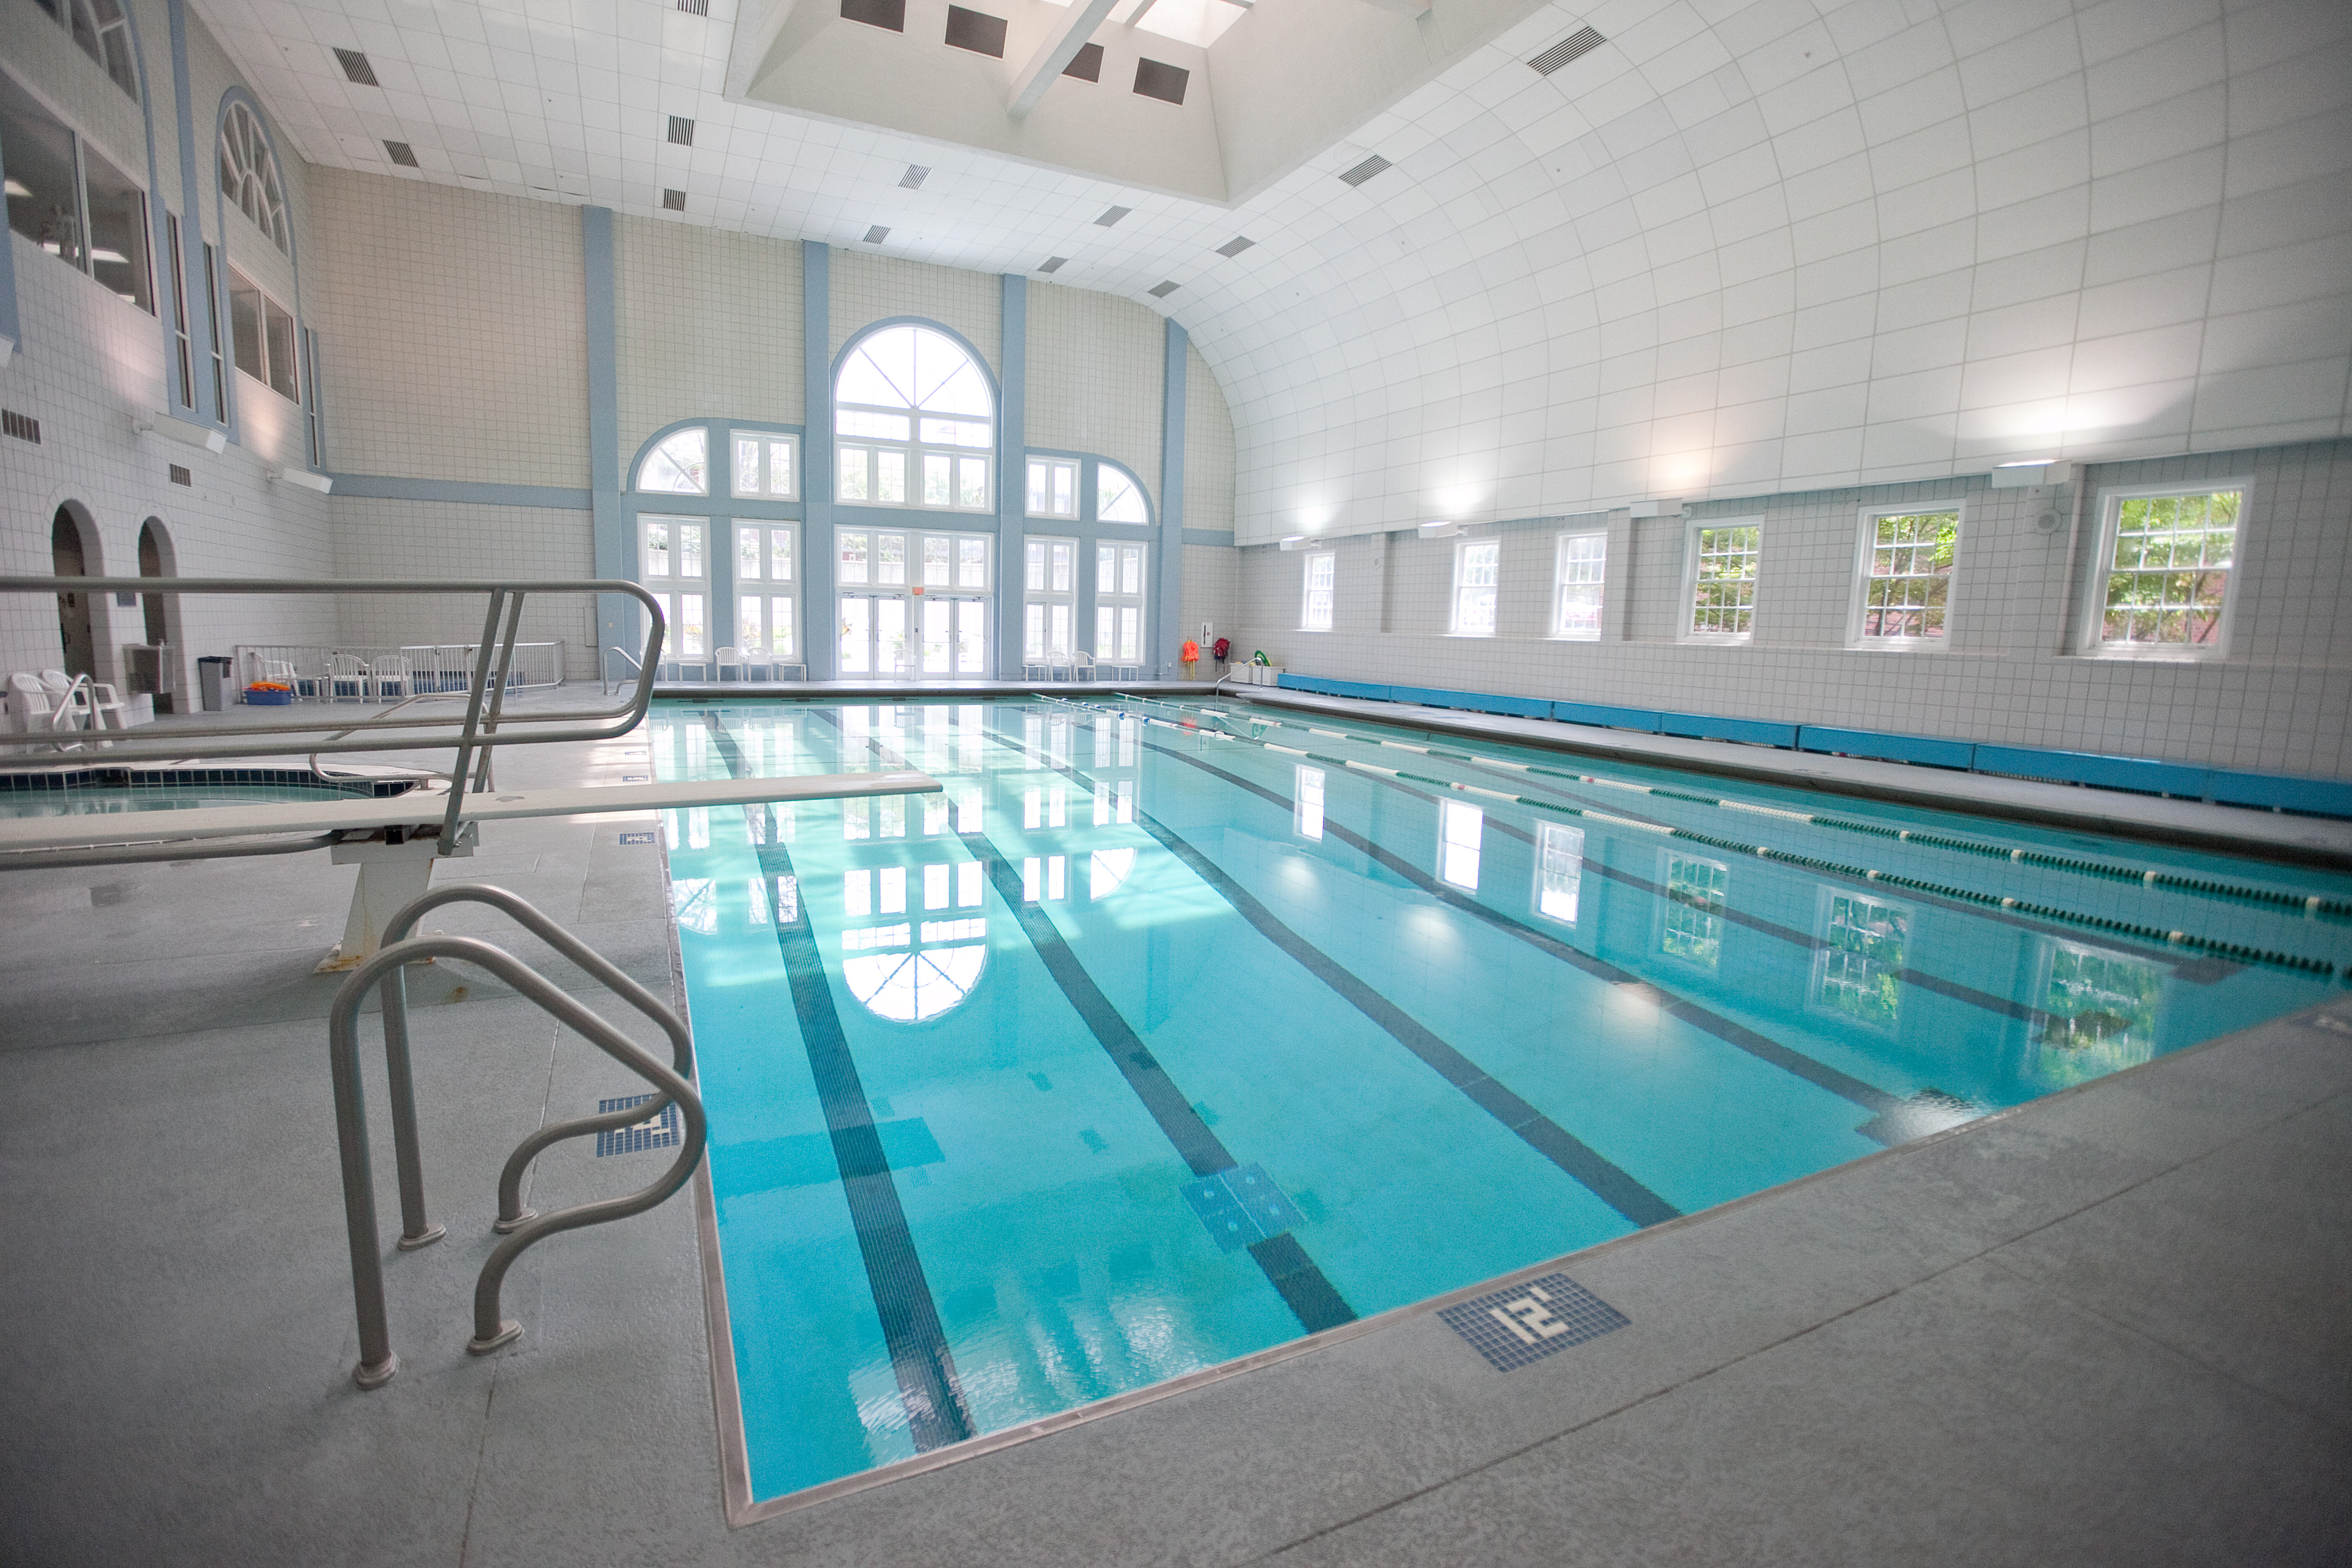 Health and Recreation Center Pool